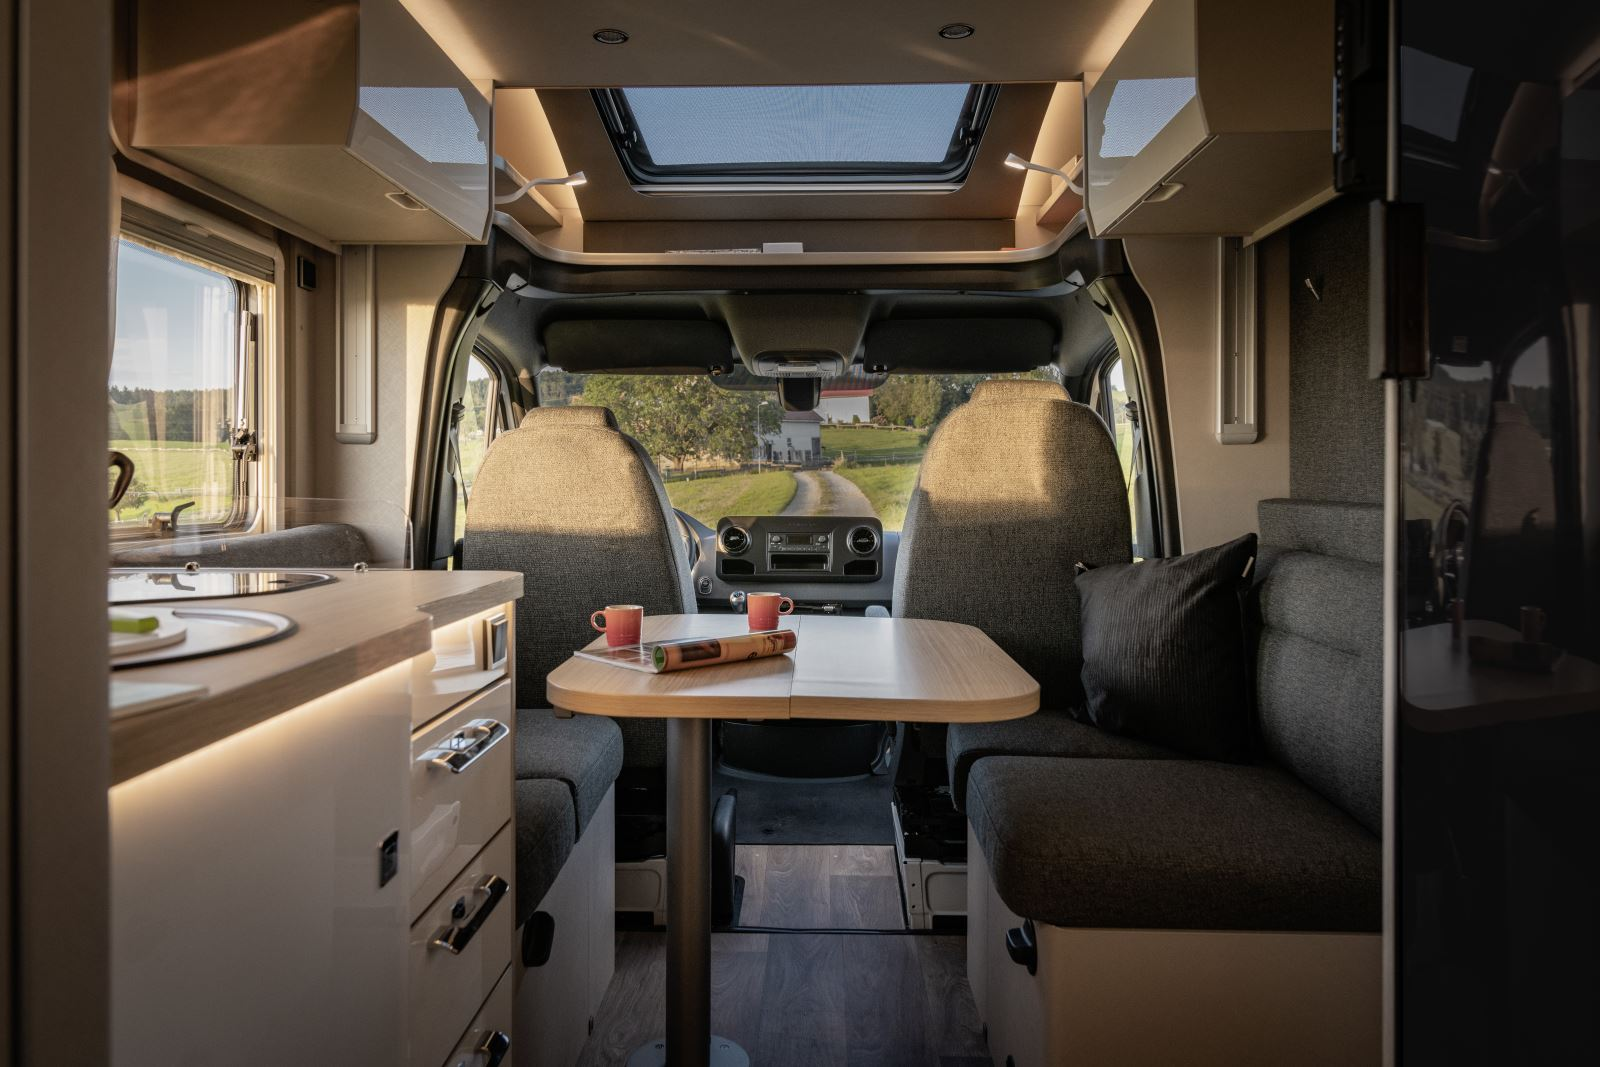 Interior of the Hymer T-S 695